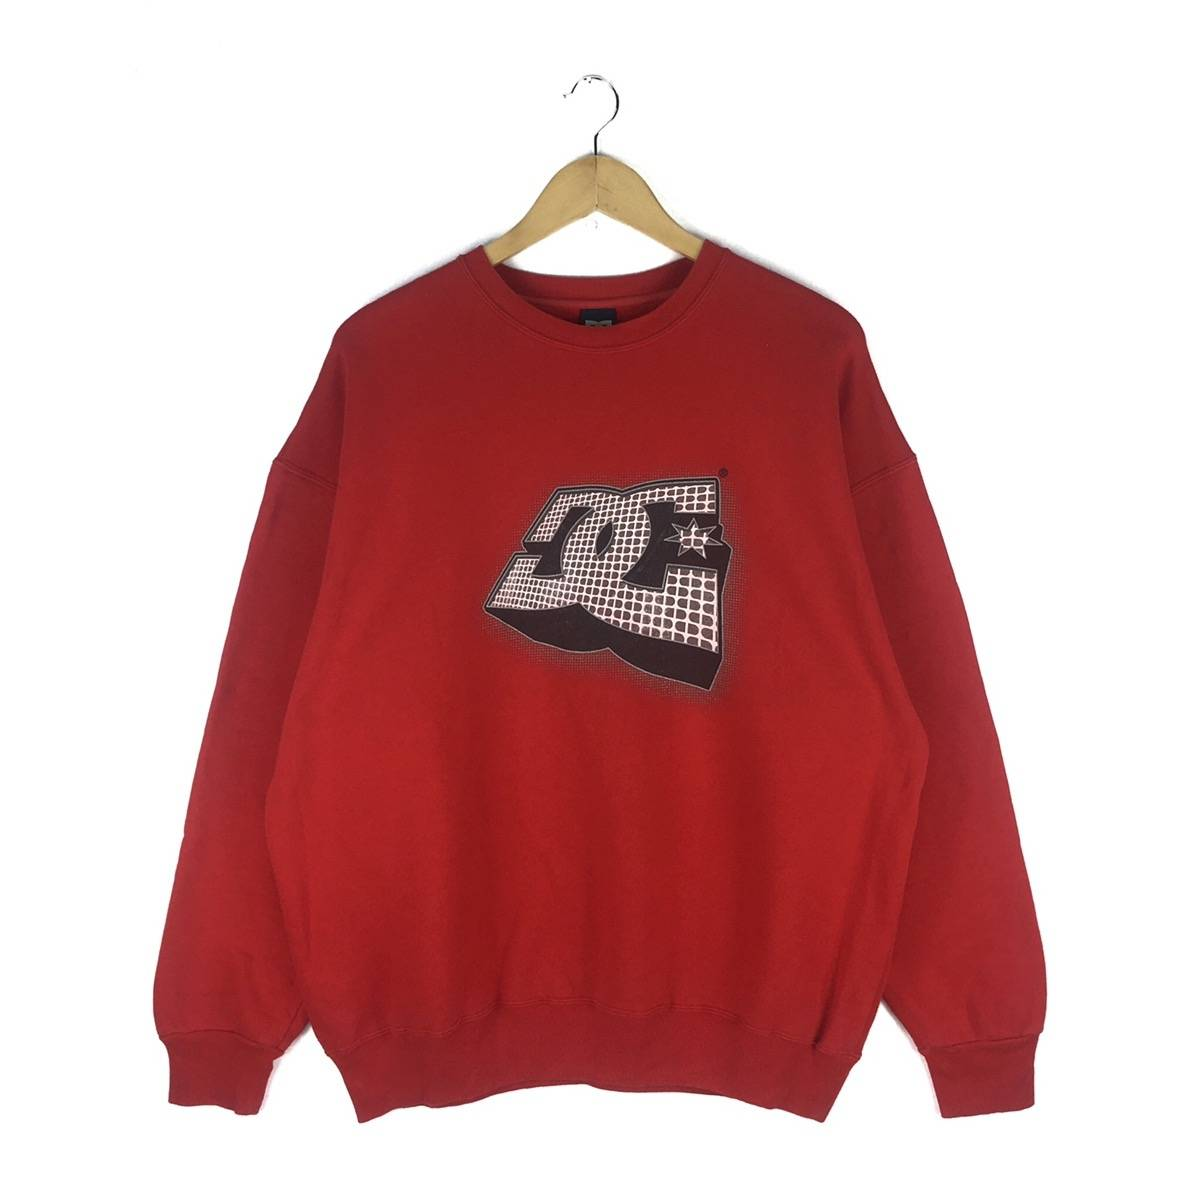 5717d4a5aa34 Vintage × Dc × Made In Usa ×. Rare!!! Vintage 90s DC Skate Sweatshirt ...